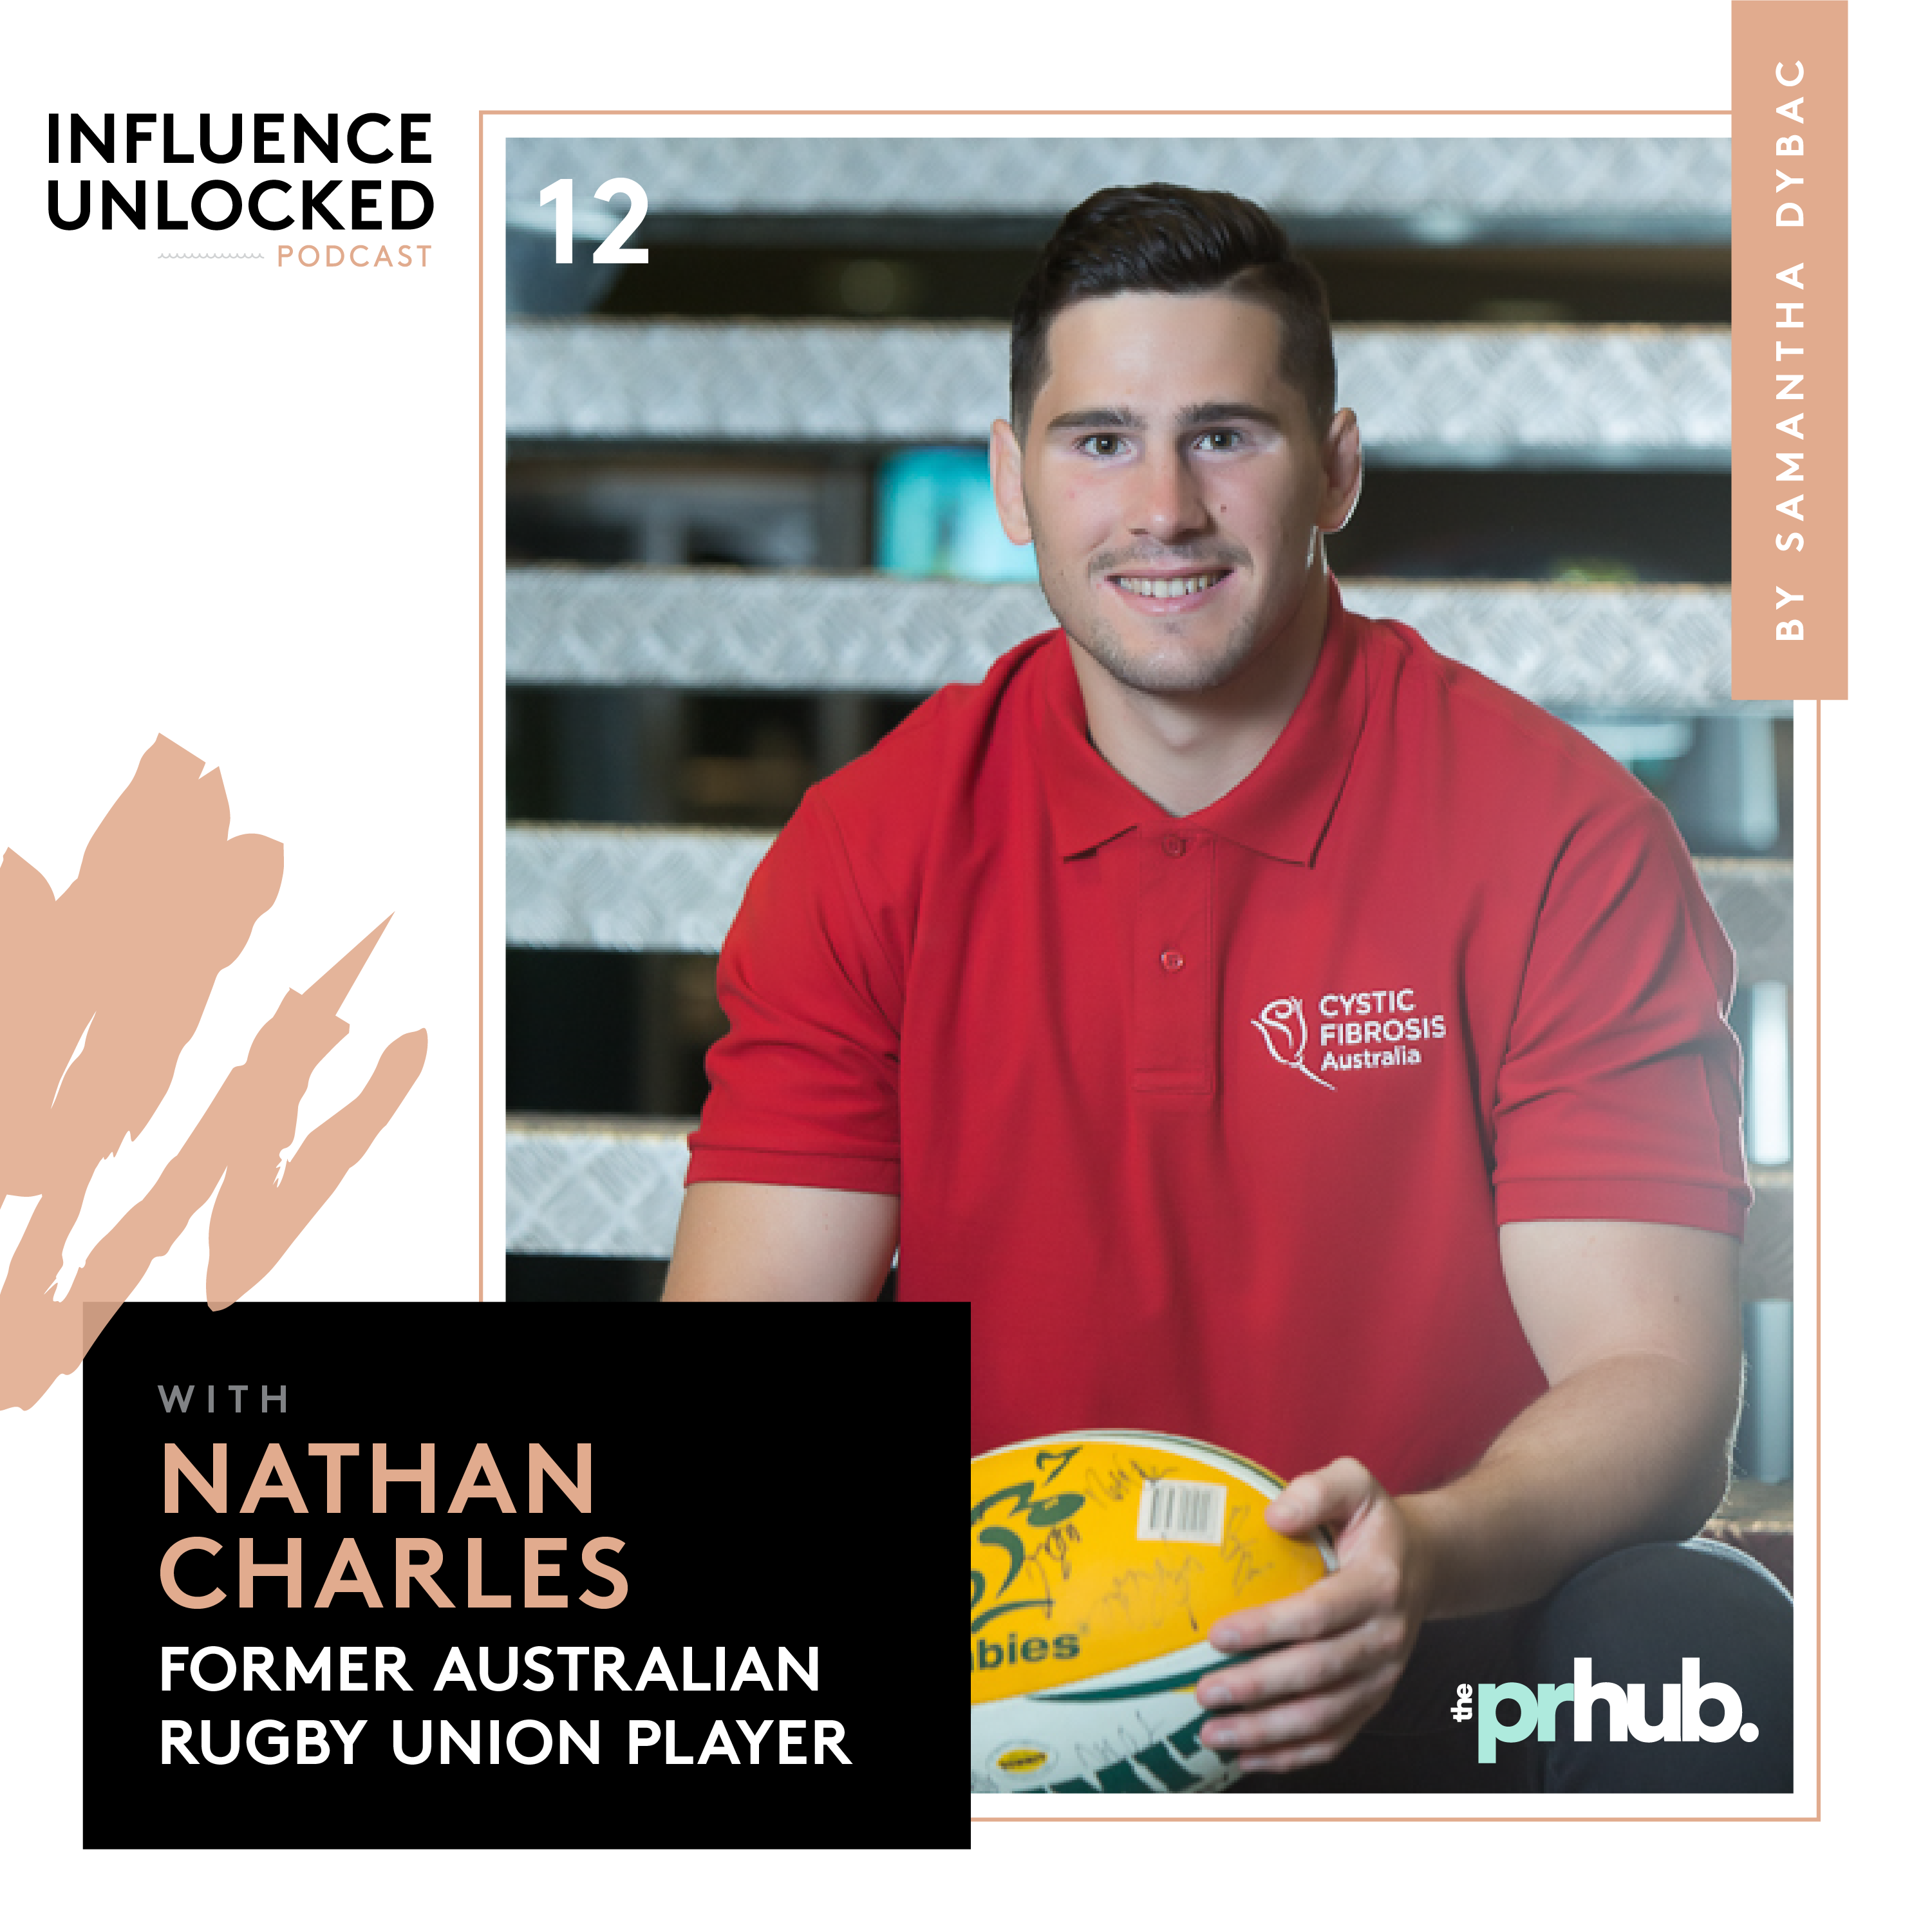 Podcast-Nathan-Charles -impossible -influence-unlocked